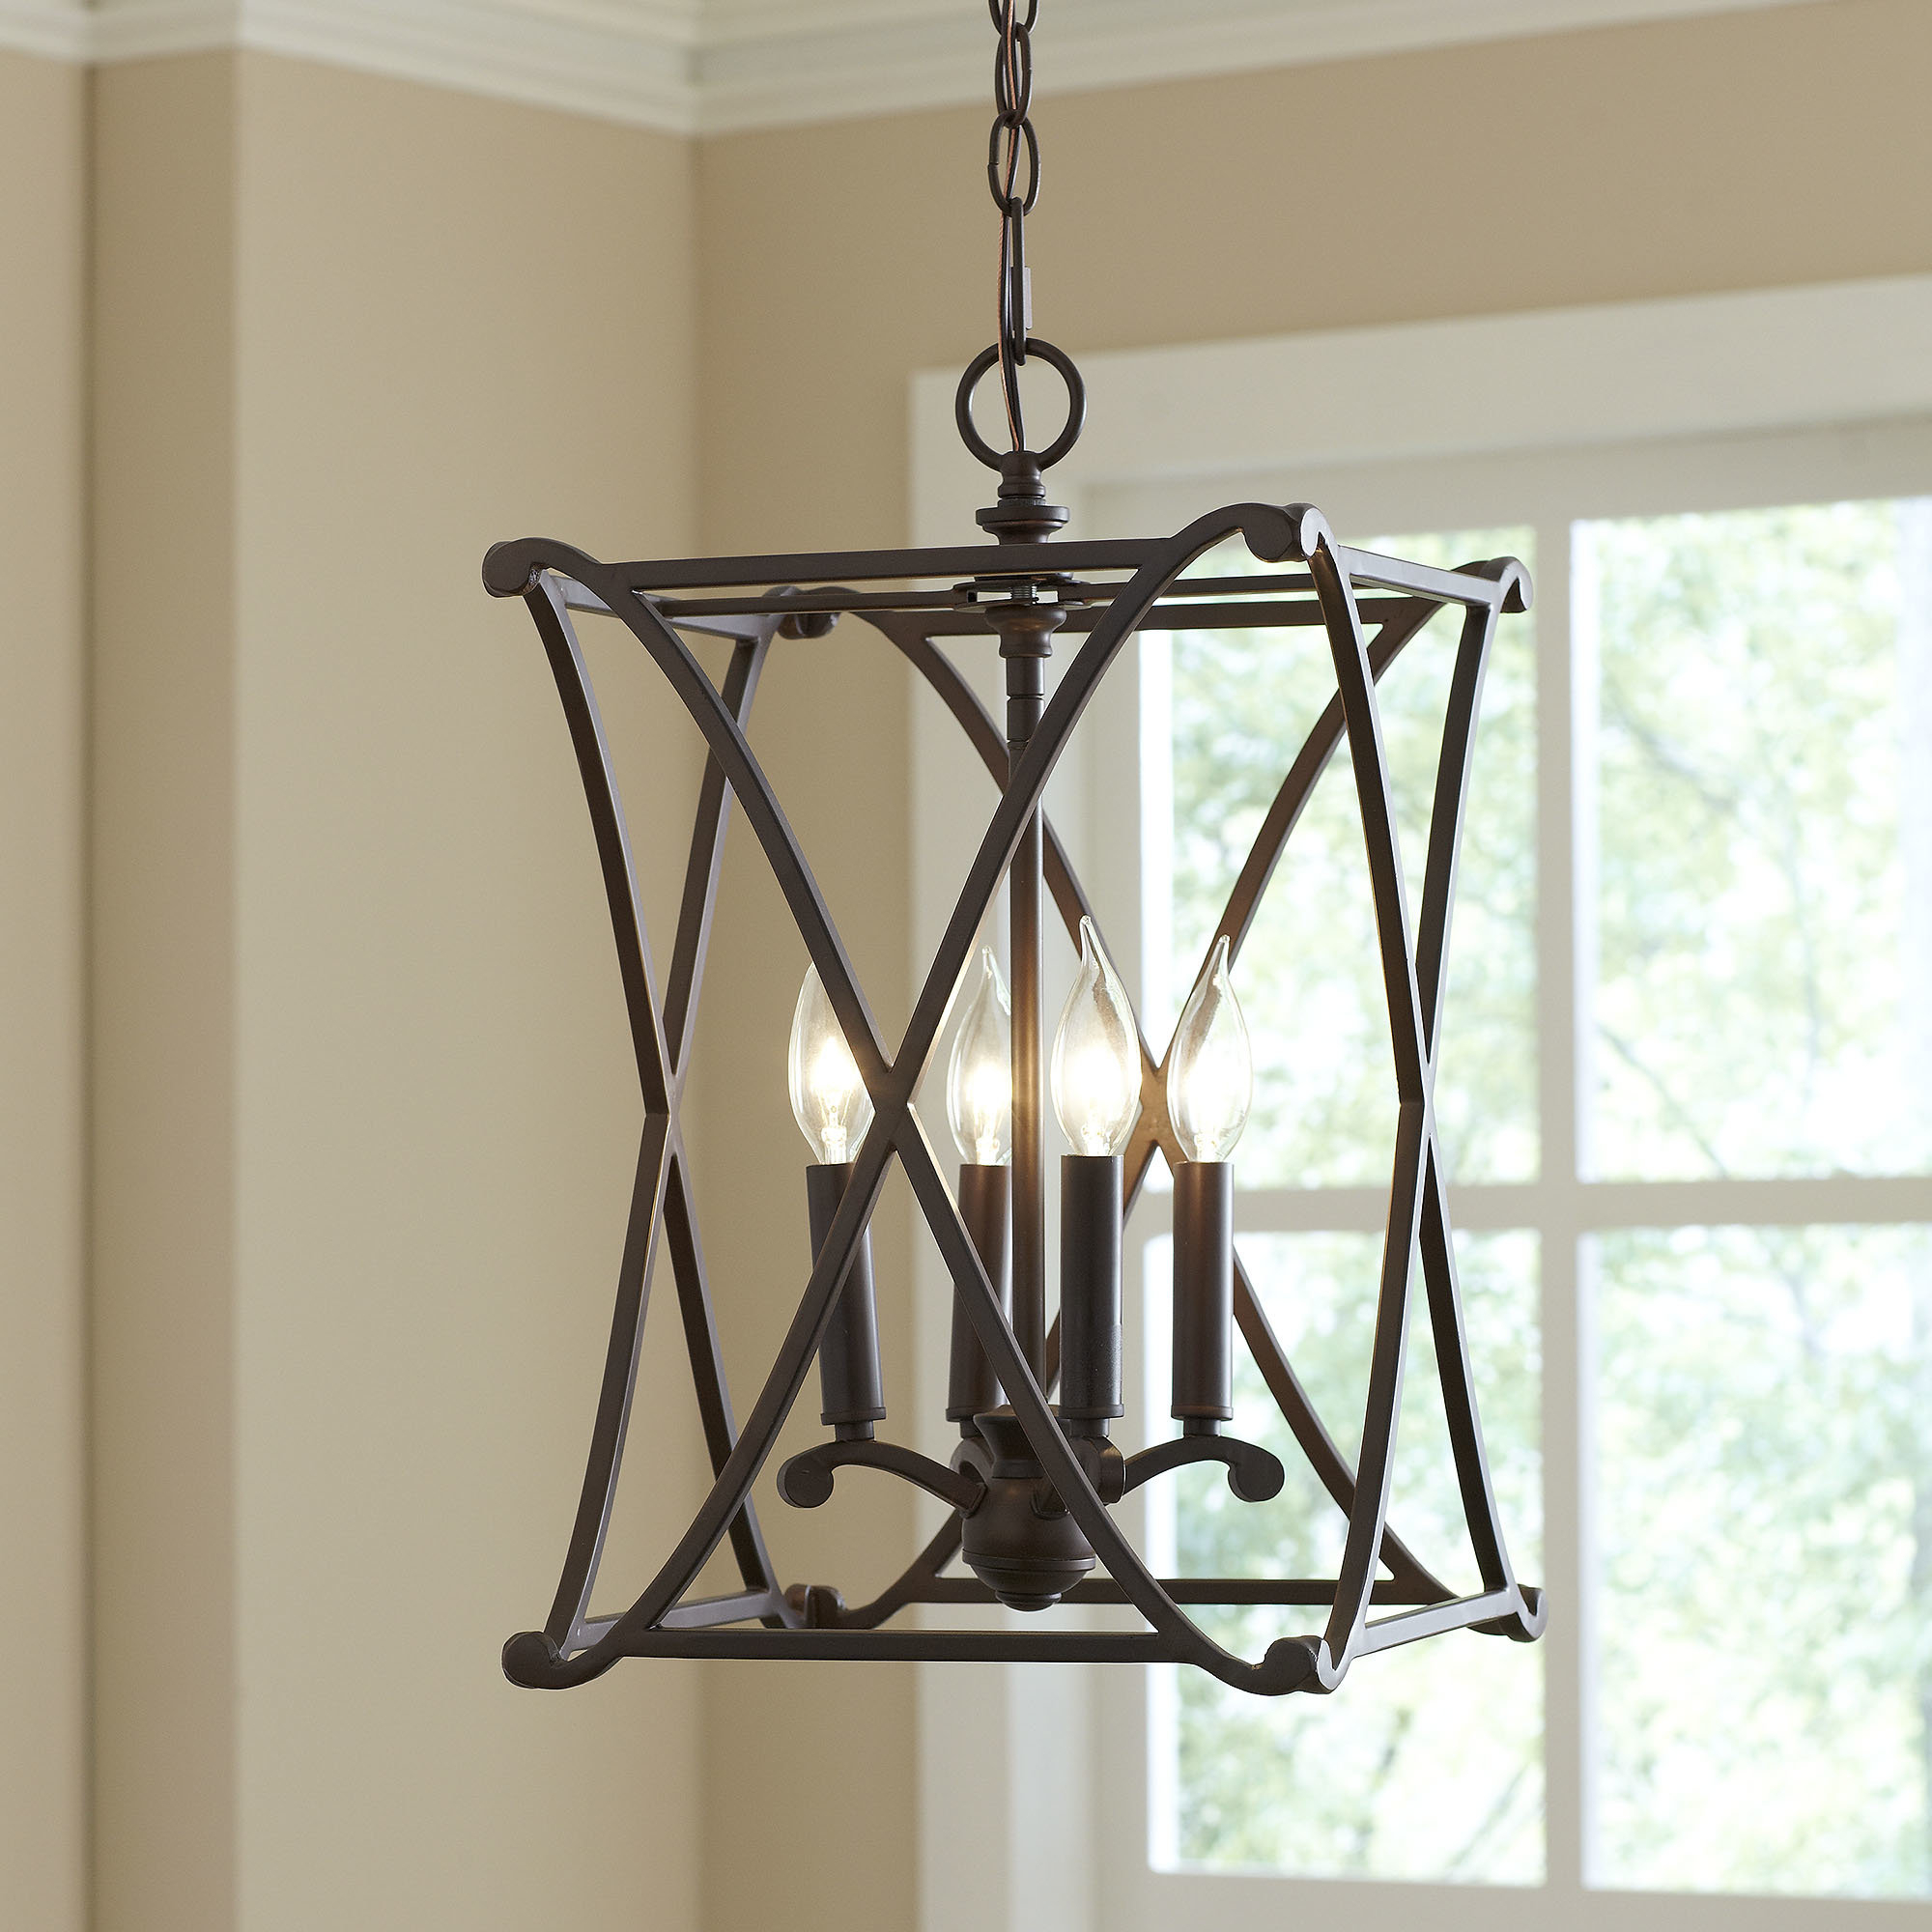 Carmen 6 Light Lantern Geometric Pendants Throughout Famous Nisbet 6 Light Lantern Geometric Pendant (View 9 of 20)